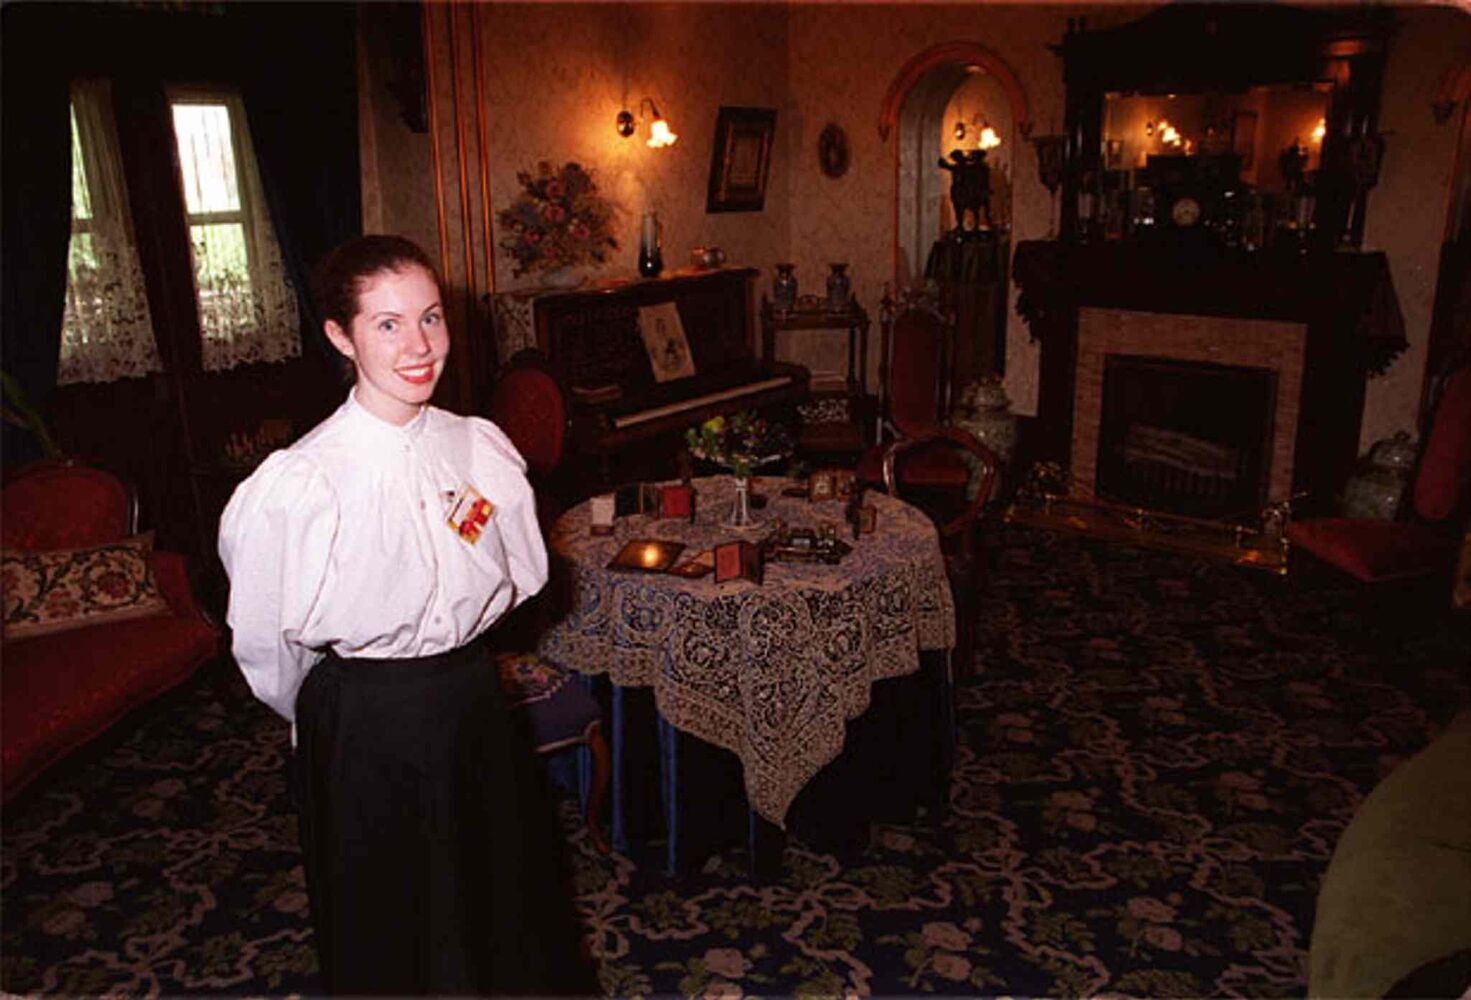 Former volunteer (and former Winnipeg Free Press reporter) Jen Skerritt poses inside Dalnavert Museum in this archive photo. (Linda Vermette / Winnipeg Free Press archives)